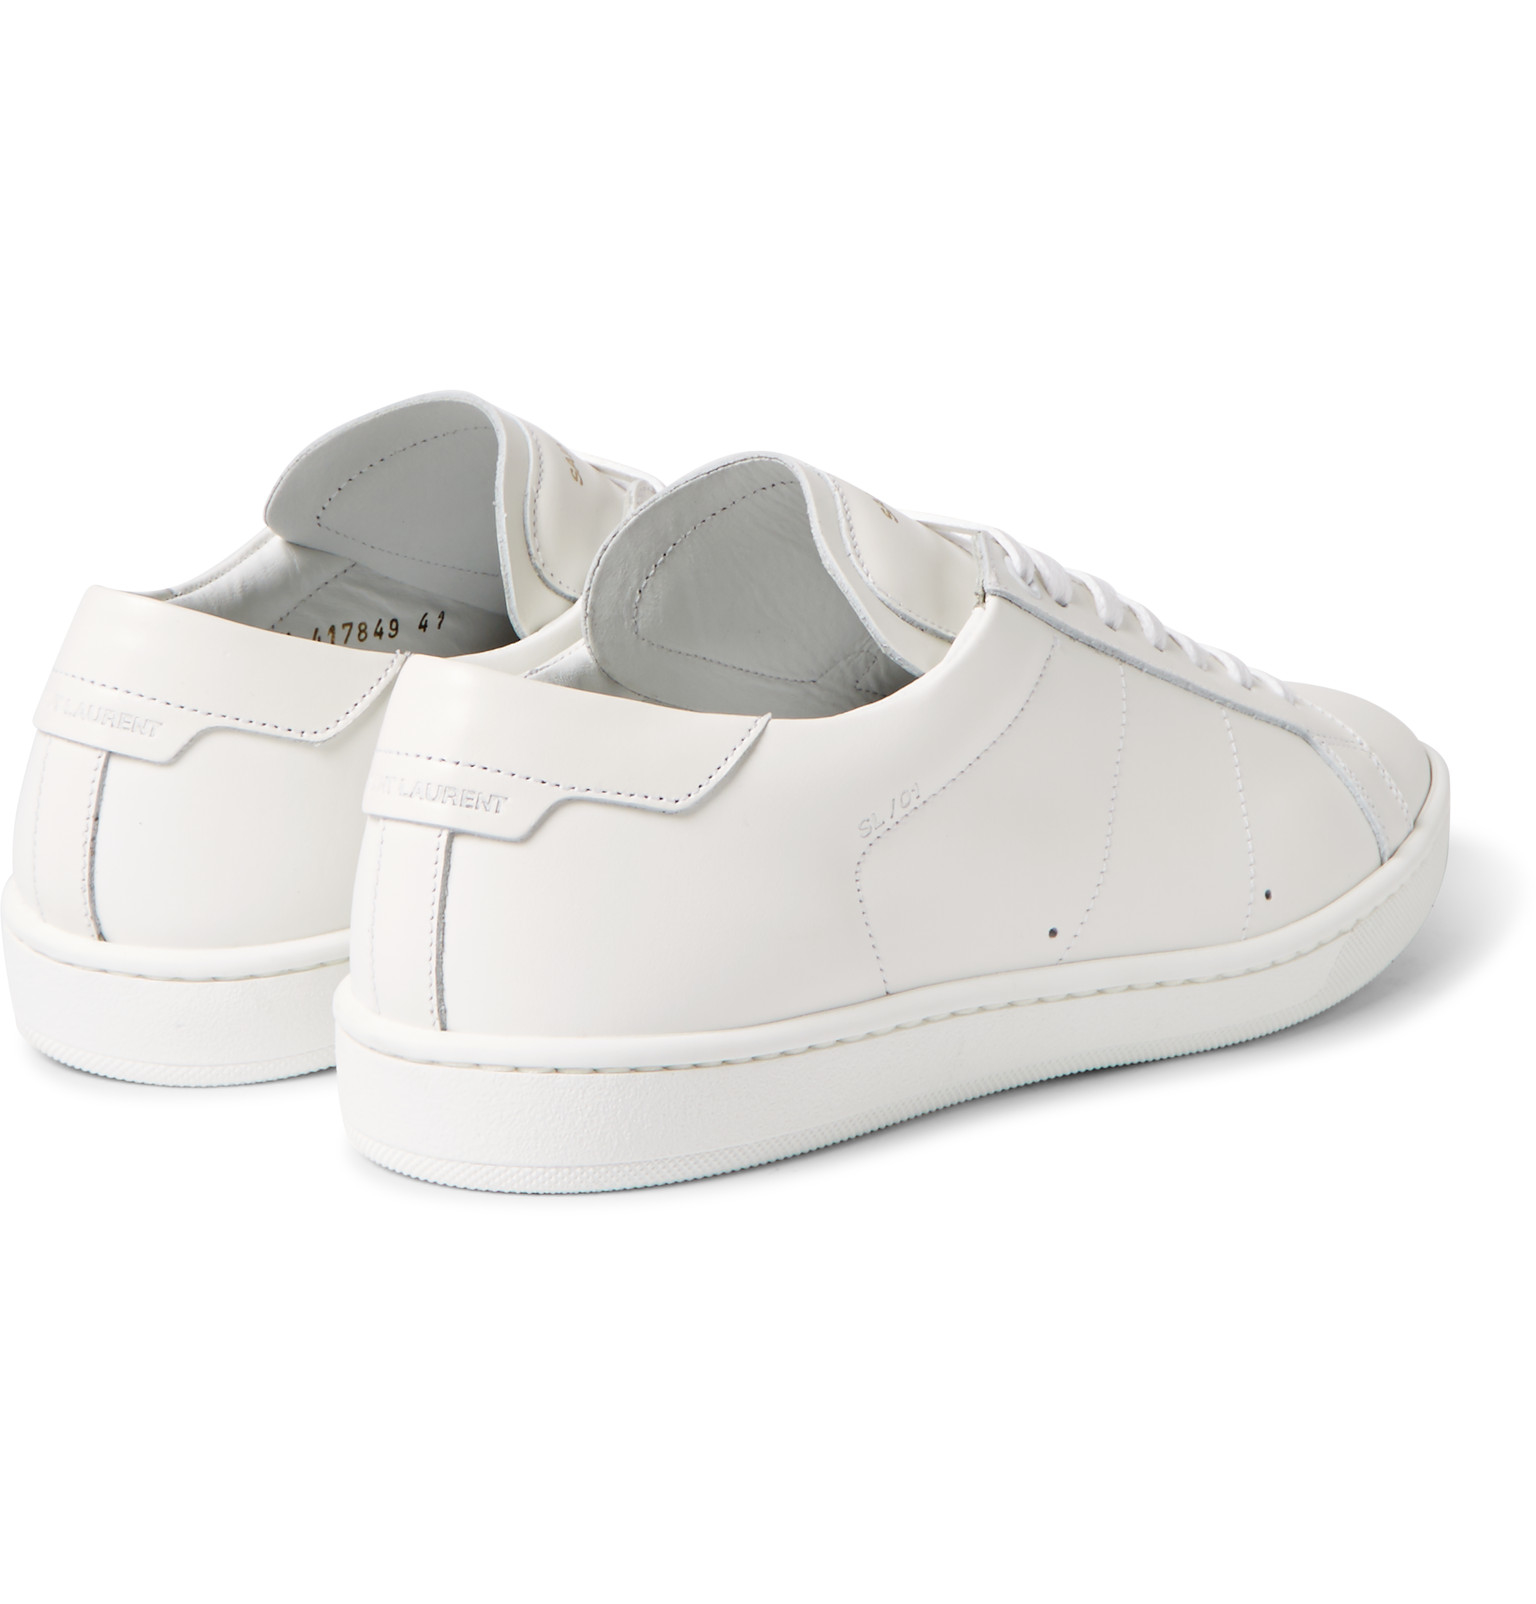 6643502ea42 Saint Laurent Sl01 Court Classic Leather Sneakers in White for Men ...